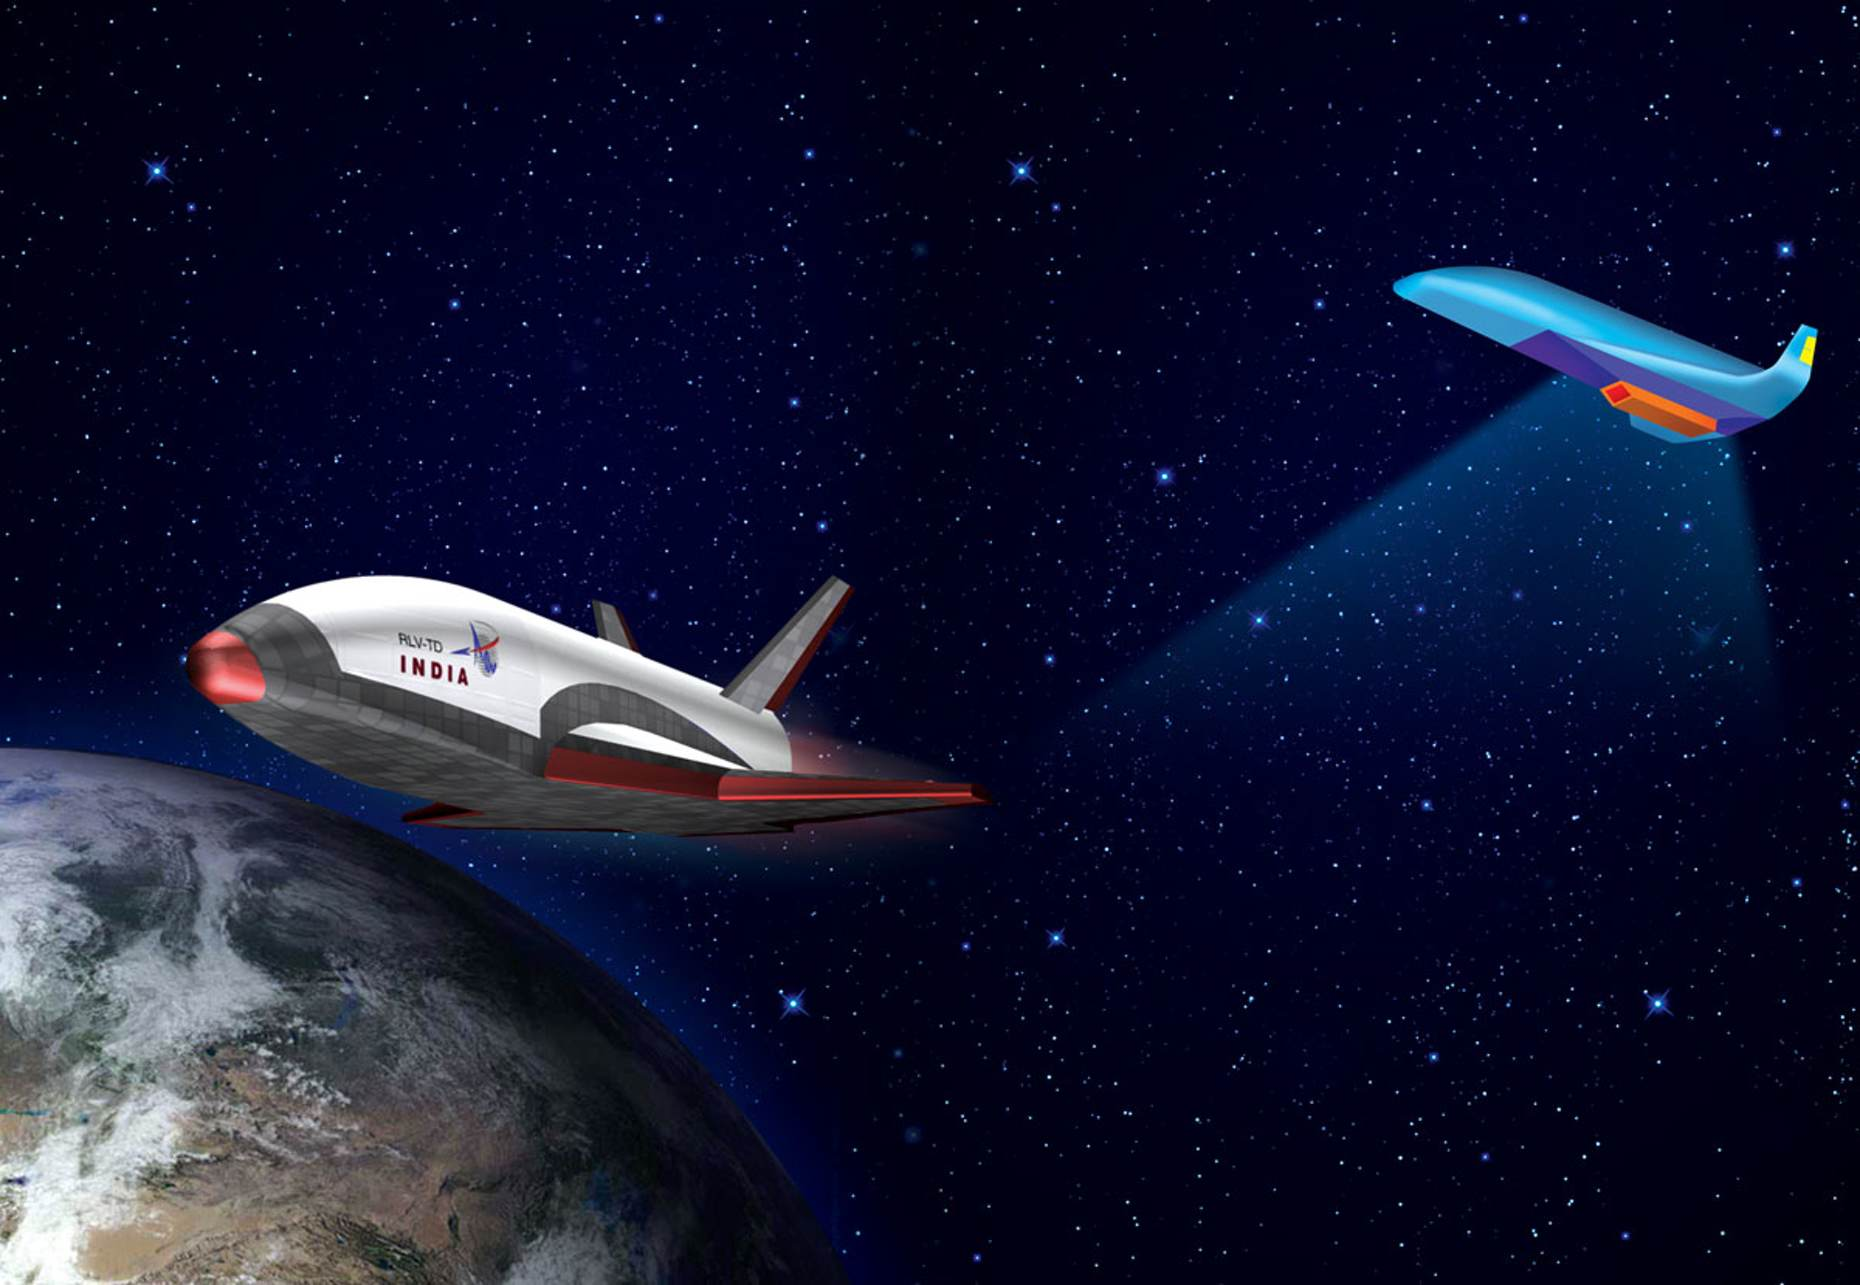 First Test Flight Of India's Spaceplane Demonstrator Delayed Again